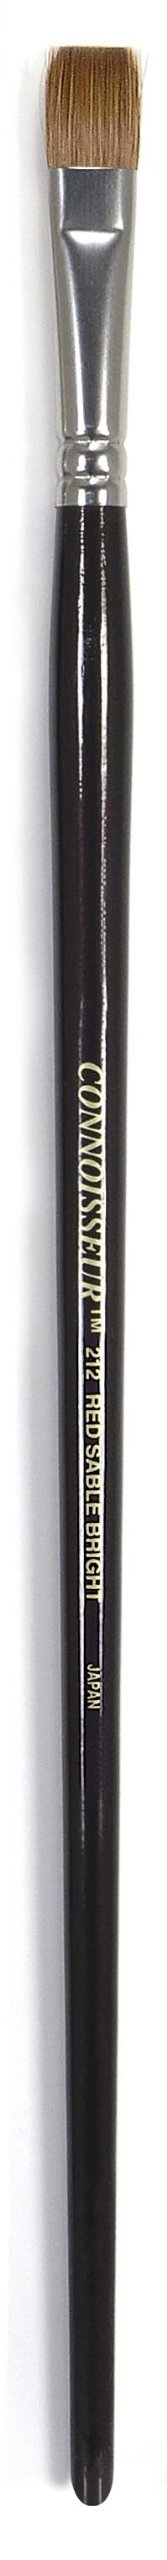 Connoisseur Pure Red Sable Brush, 10 Bright by Connoisseur